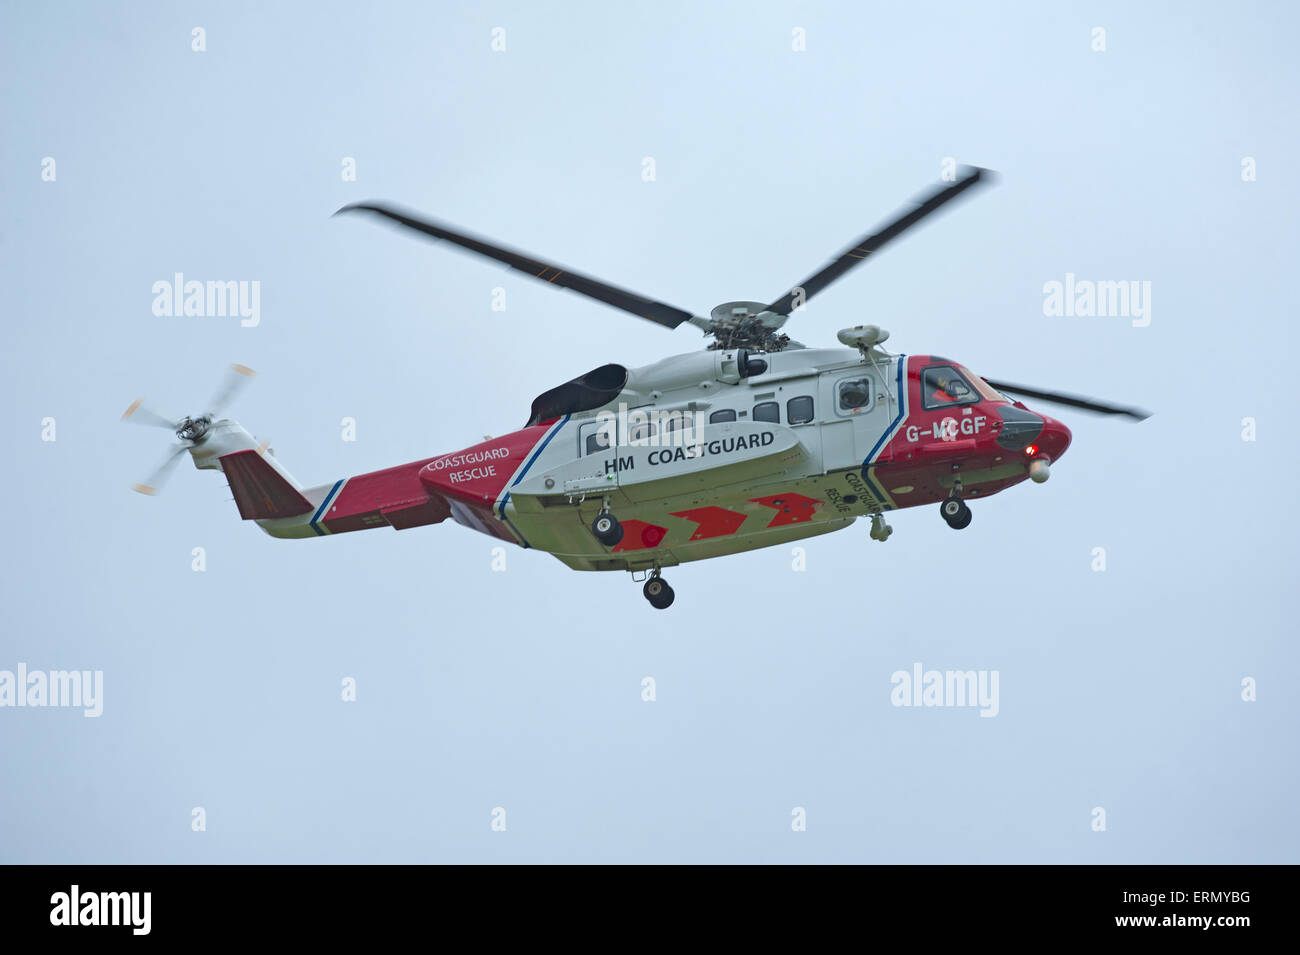 The Scottish Search and Rescue Coastguard S92A helicopter based at Inverness.  SCO 9845. - Stock Image